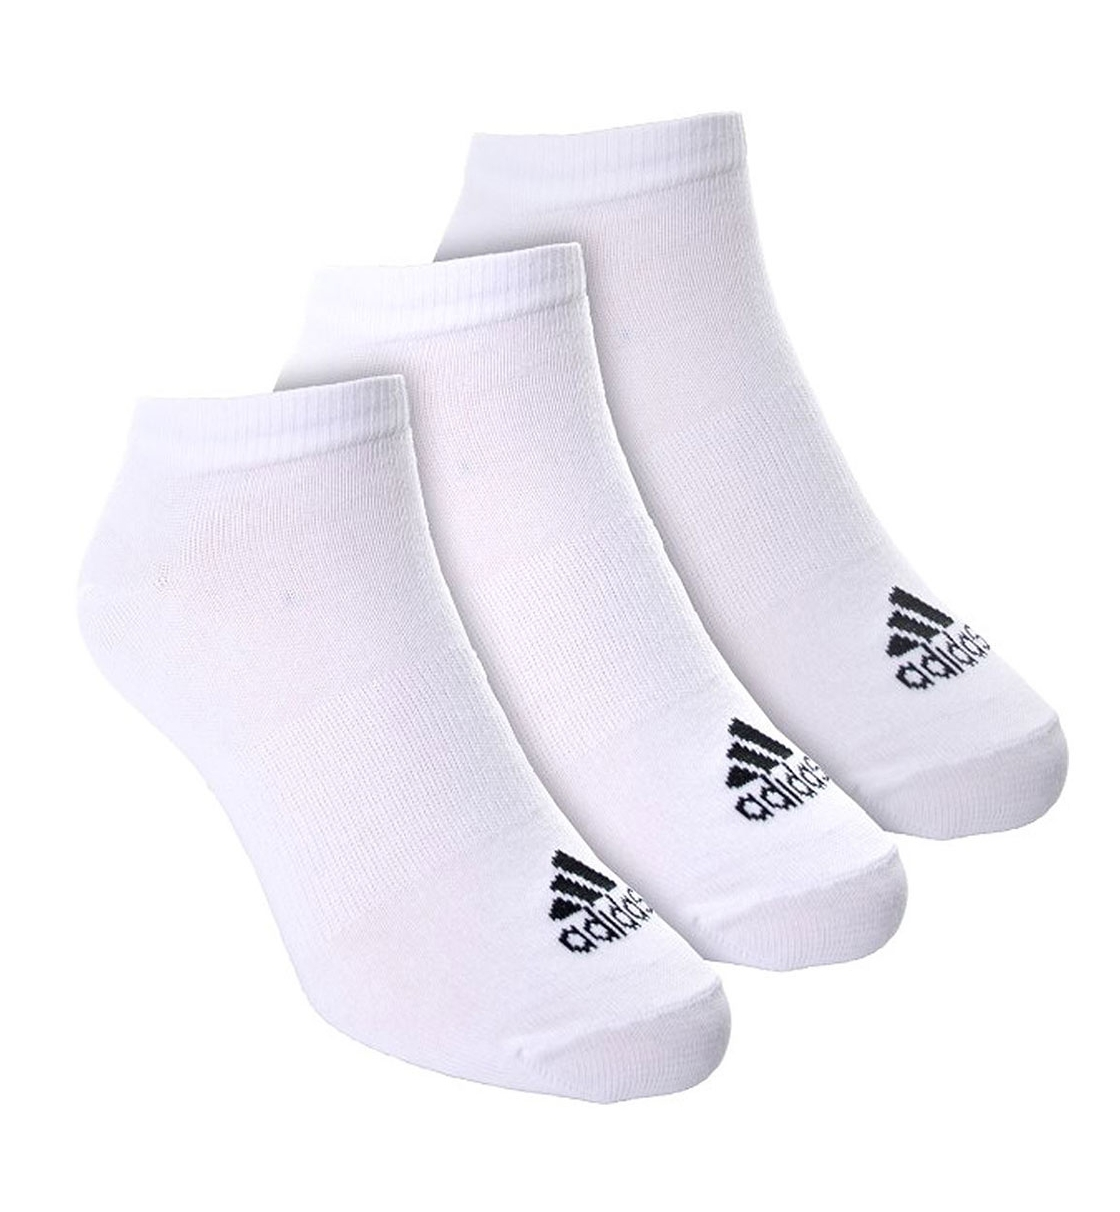 Adidas Ss19 Performance Thin No-Show Socks (3 Pairs Pack)